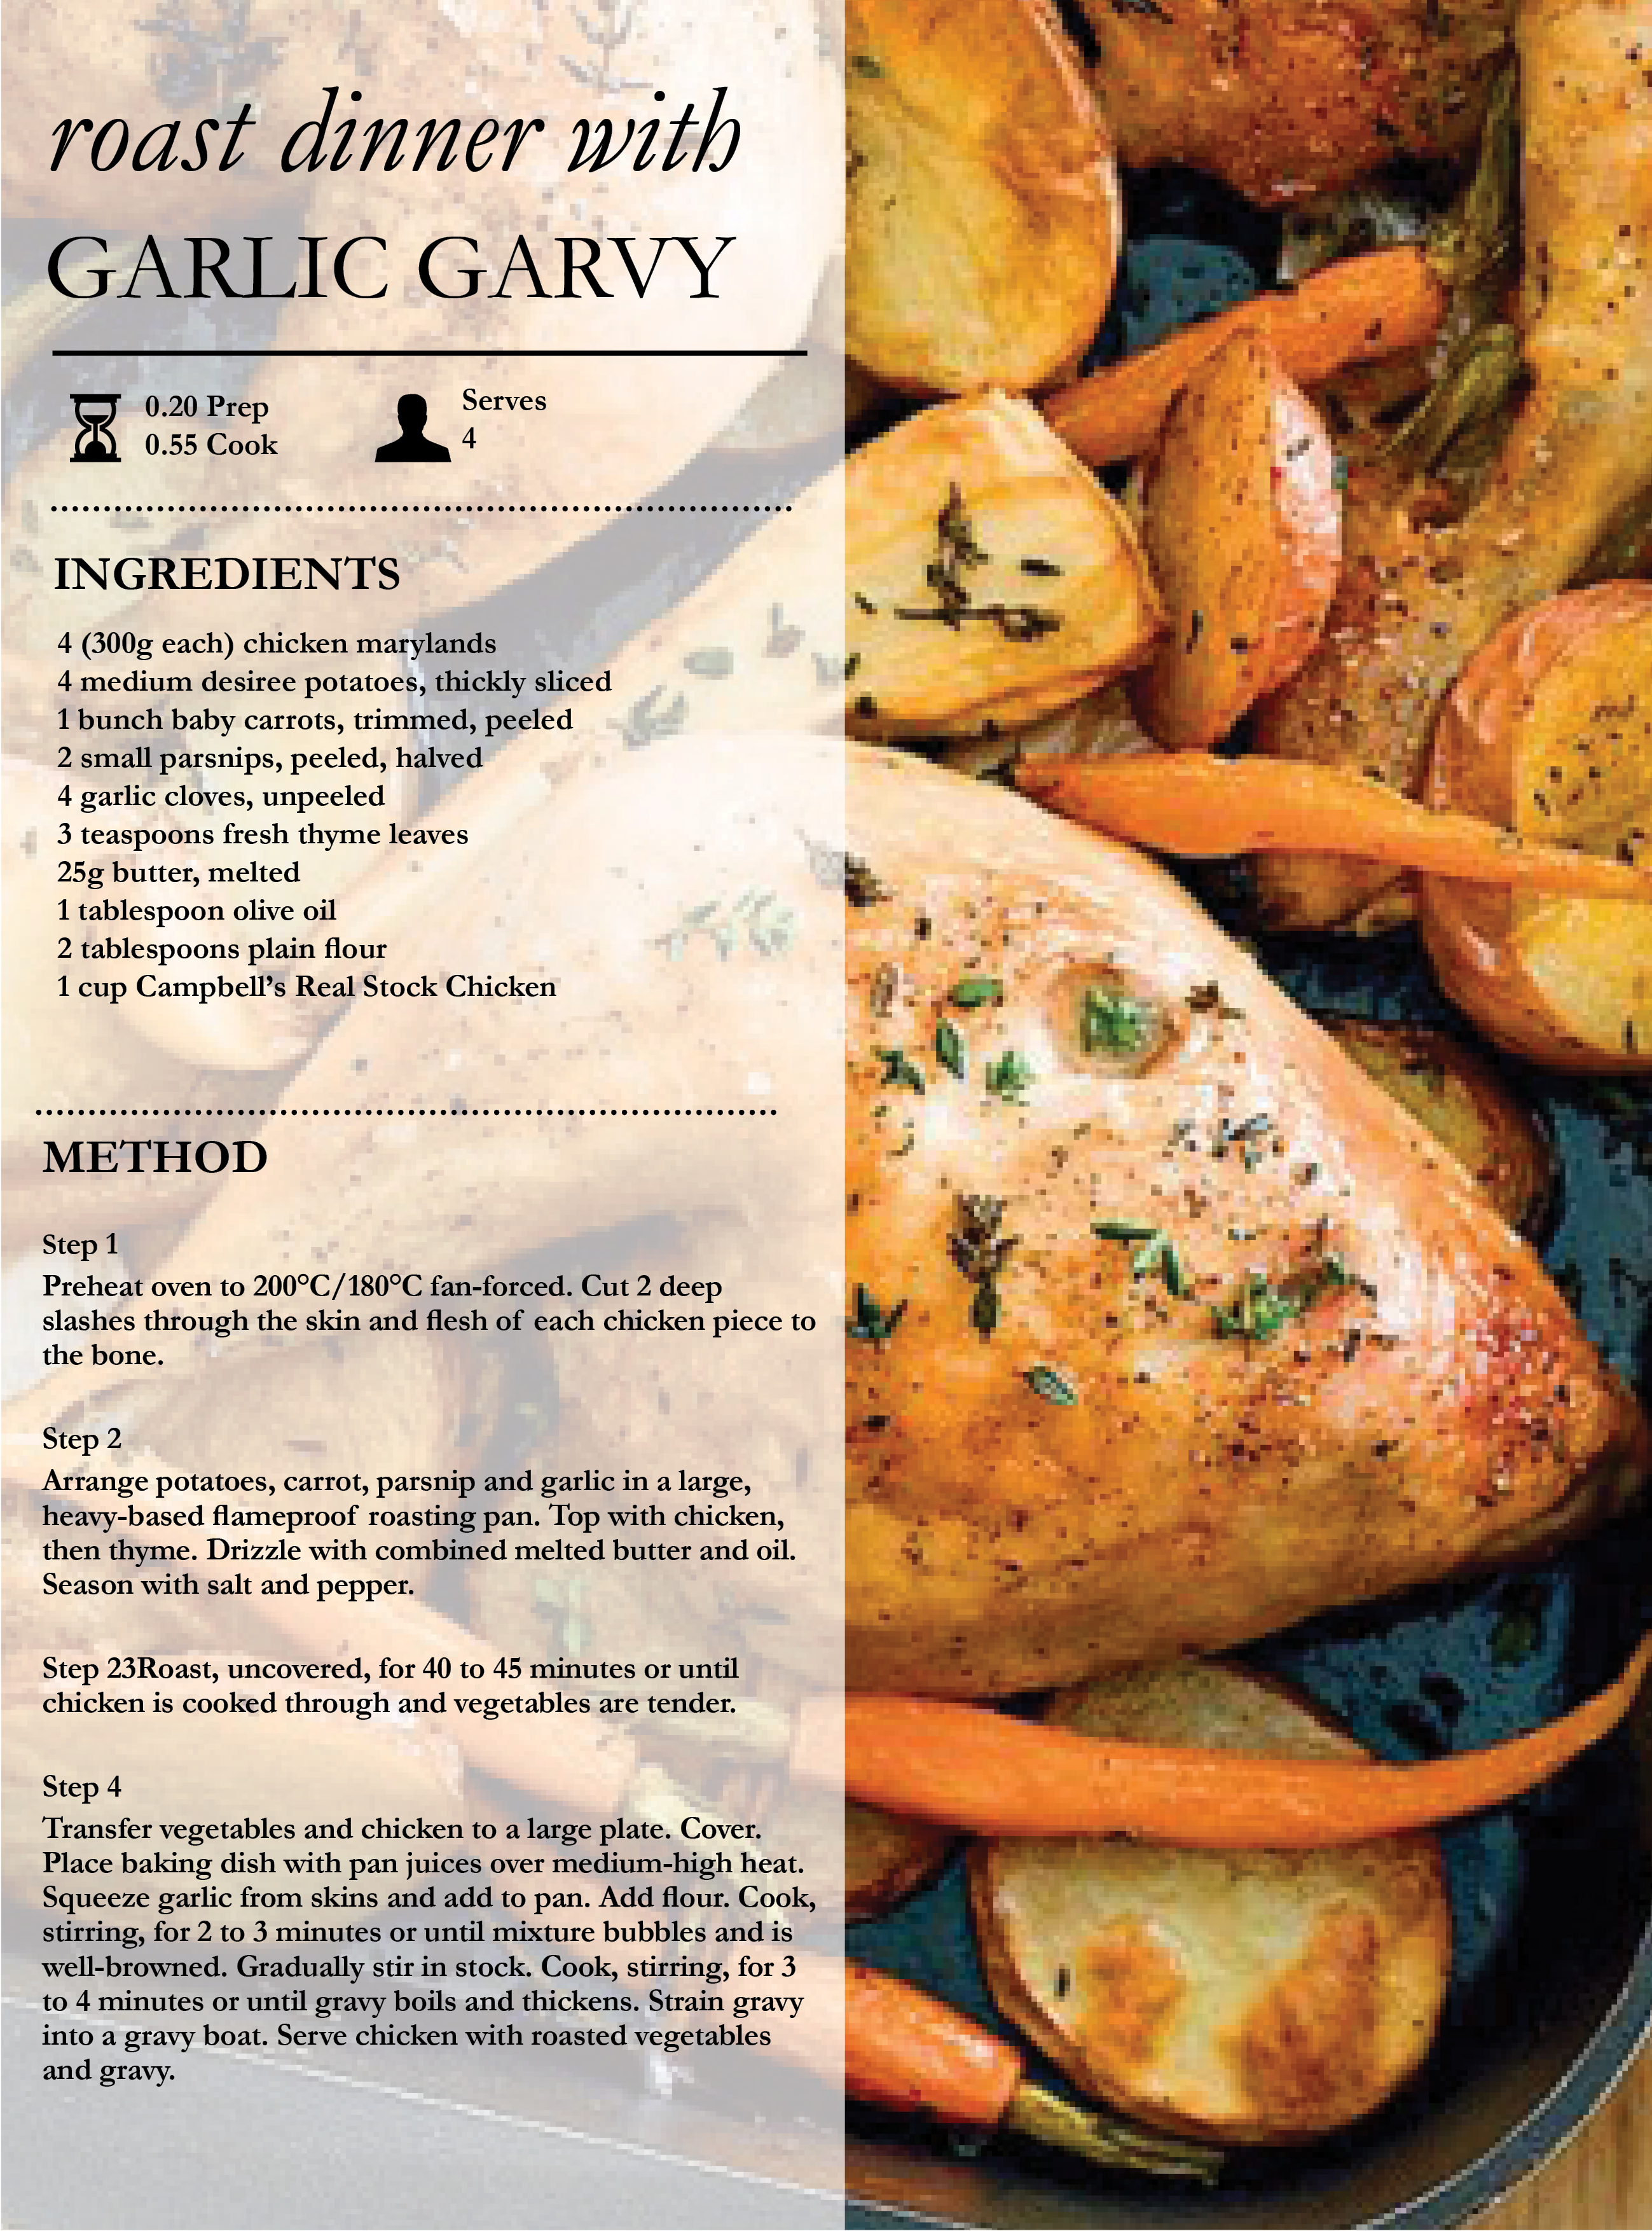 Recipes october 2016 issue page 4 of 6 my child magazine for October recipes